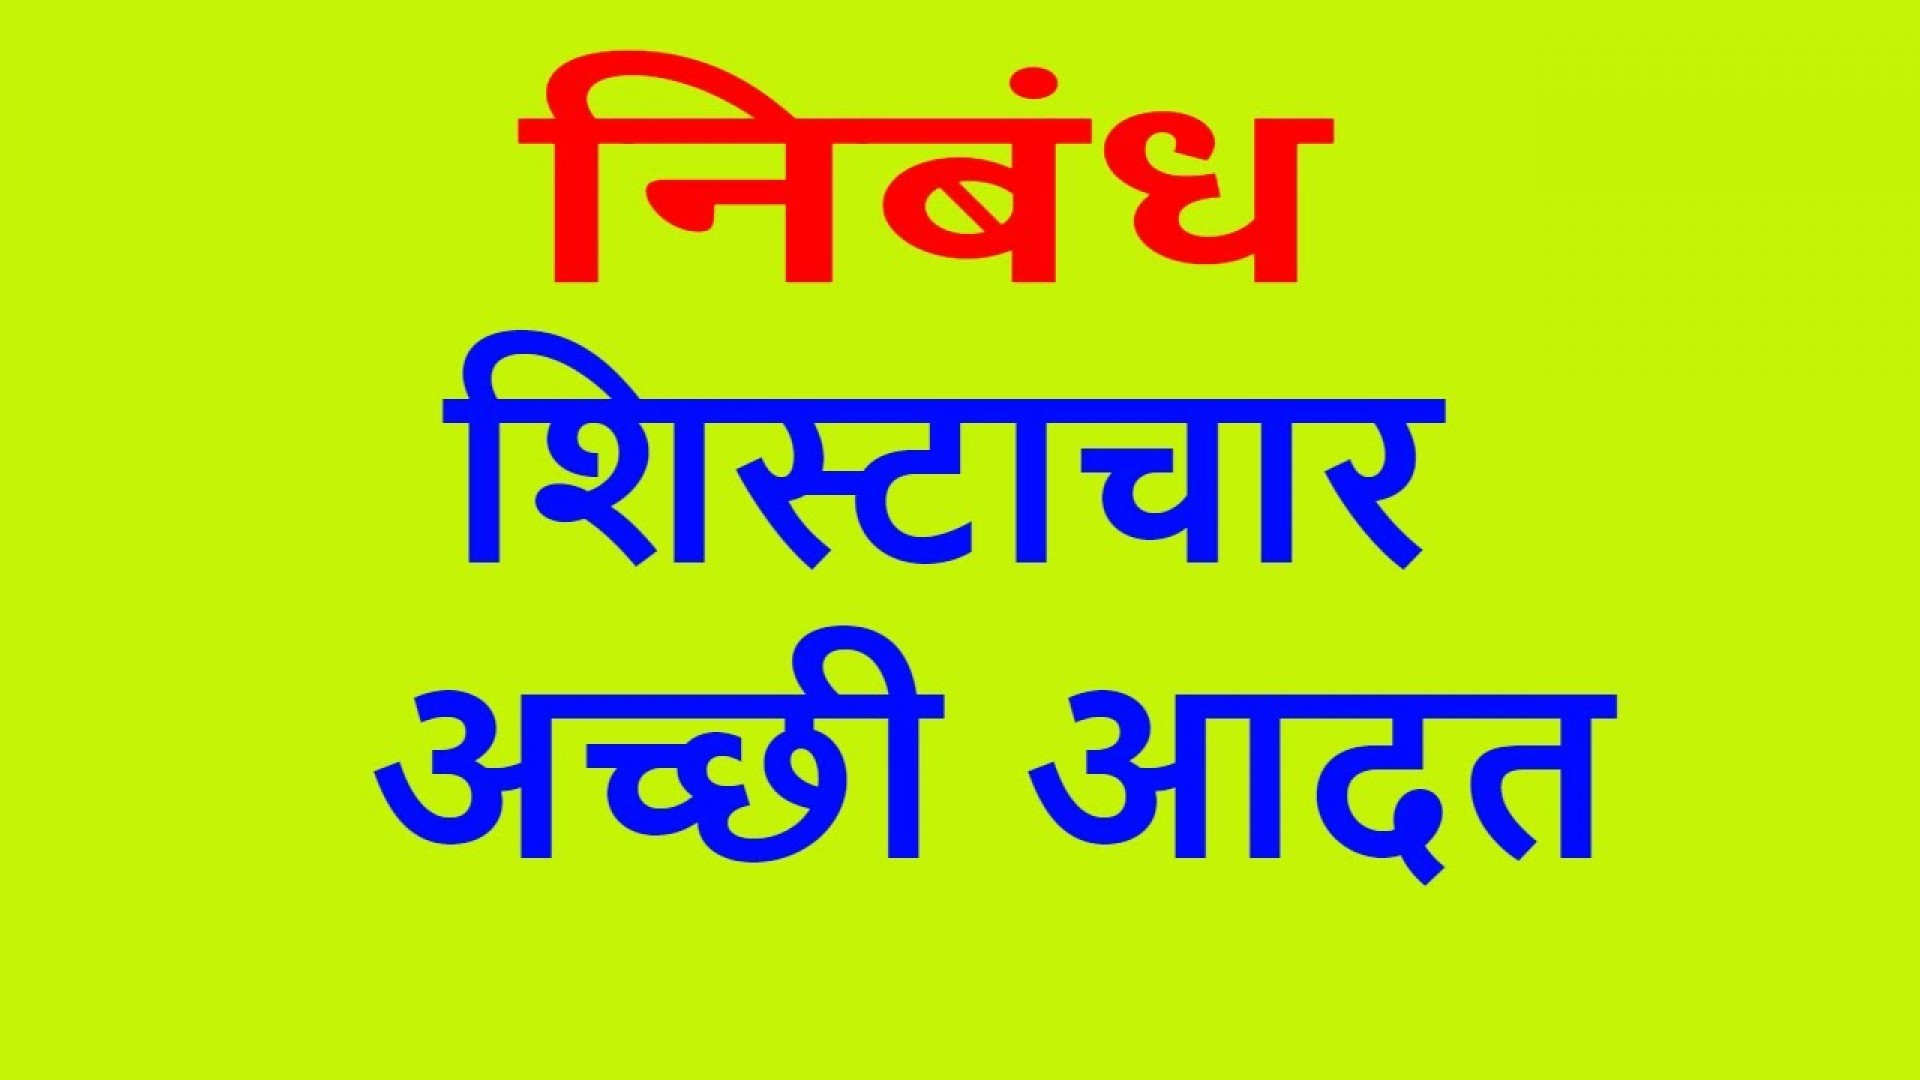 017 Maxresdefault Essay Example Good Habits In Exceptional Hindi Bad Eating Habit 1920